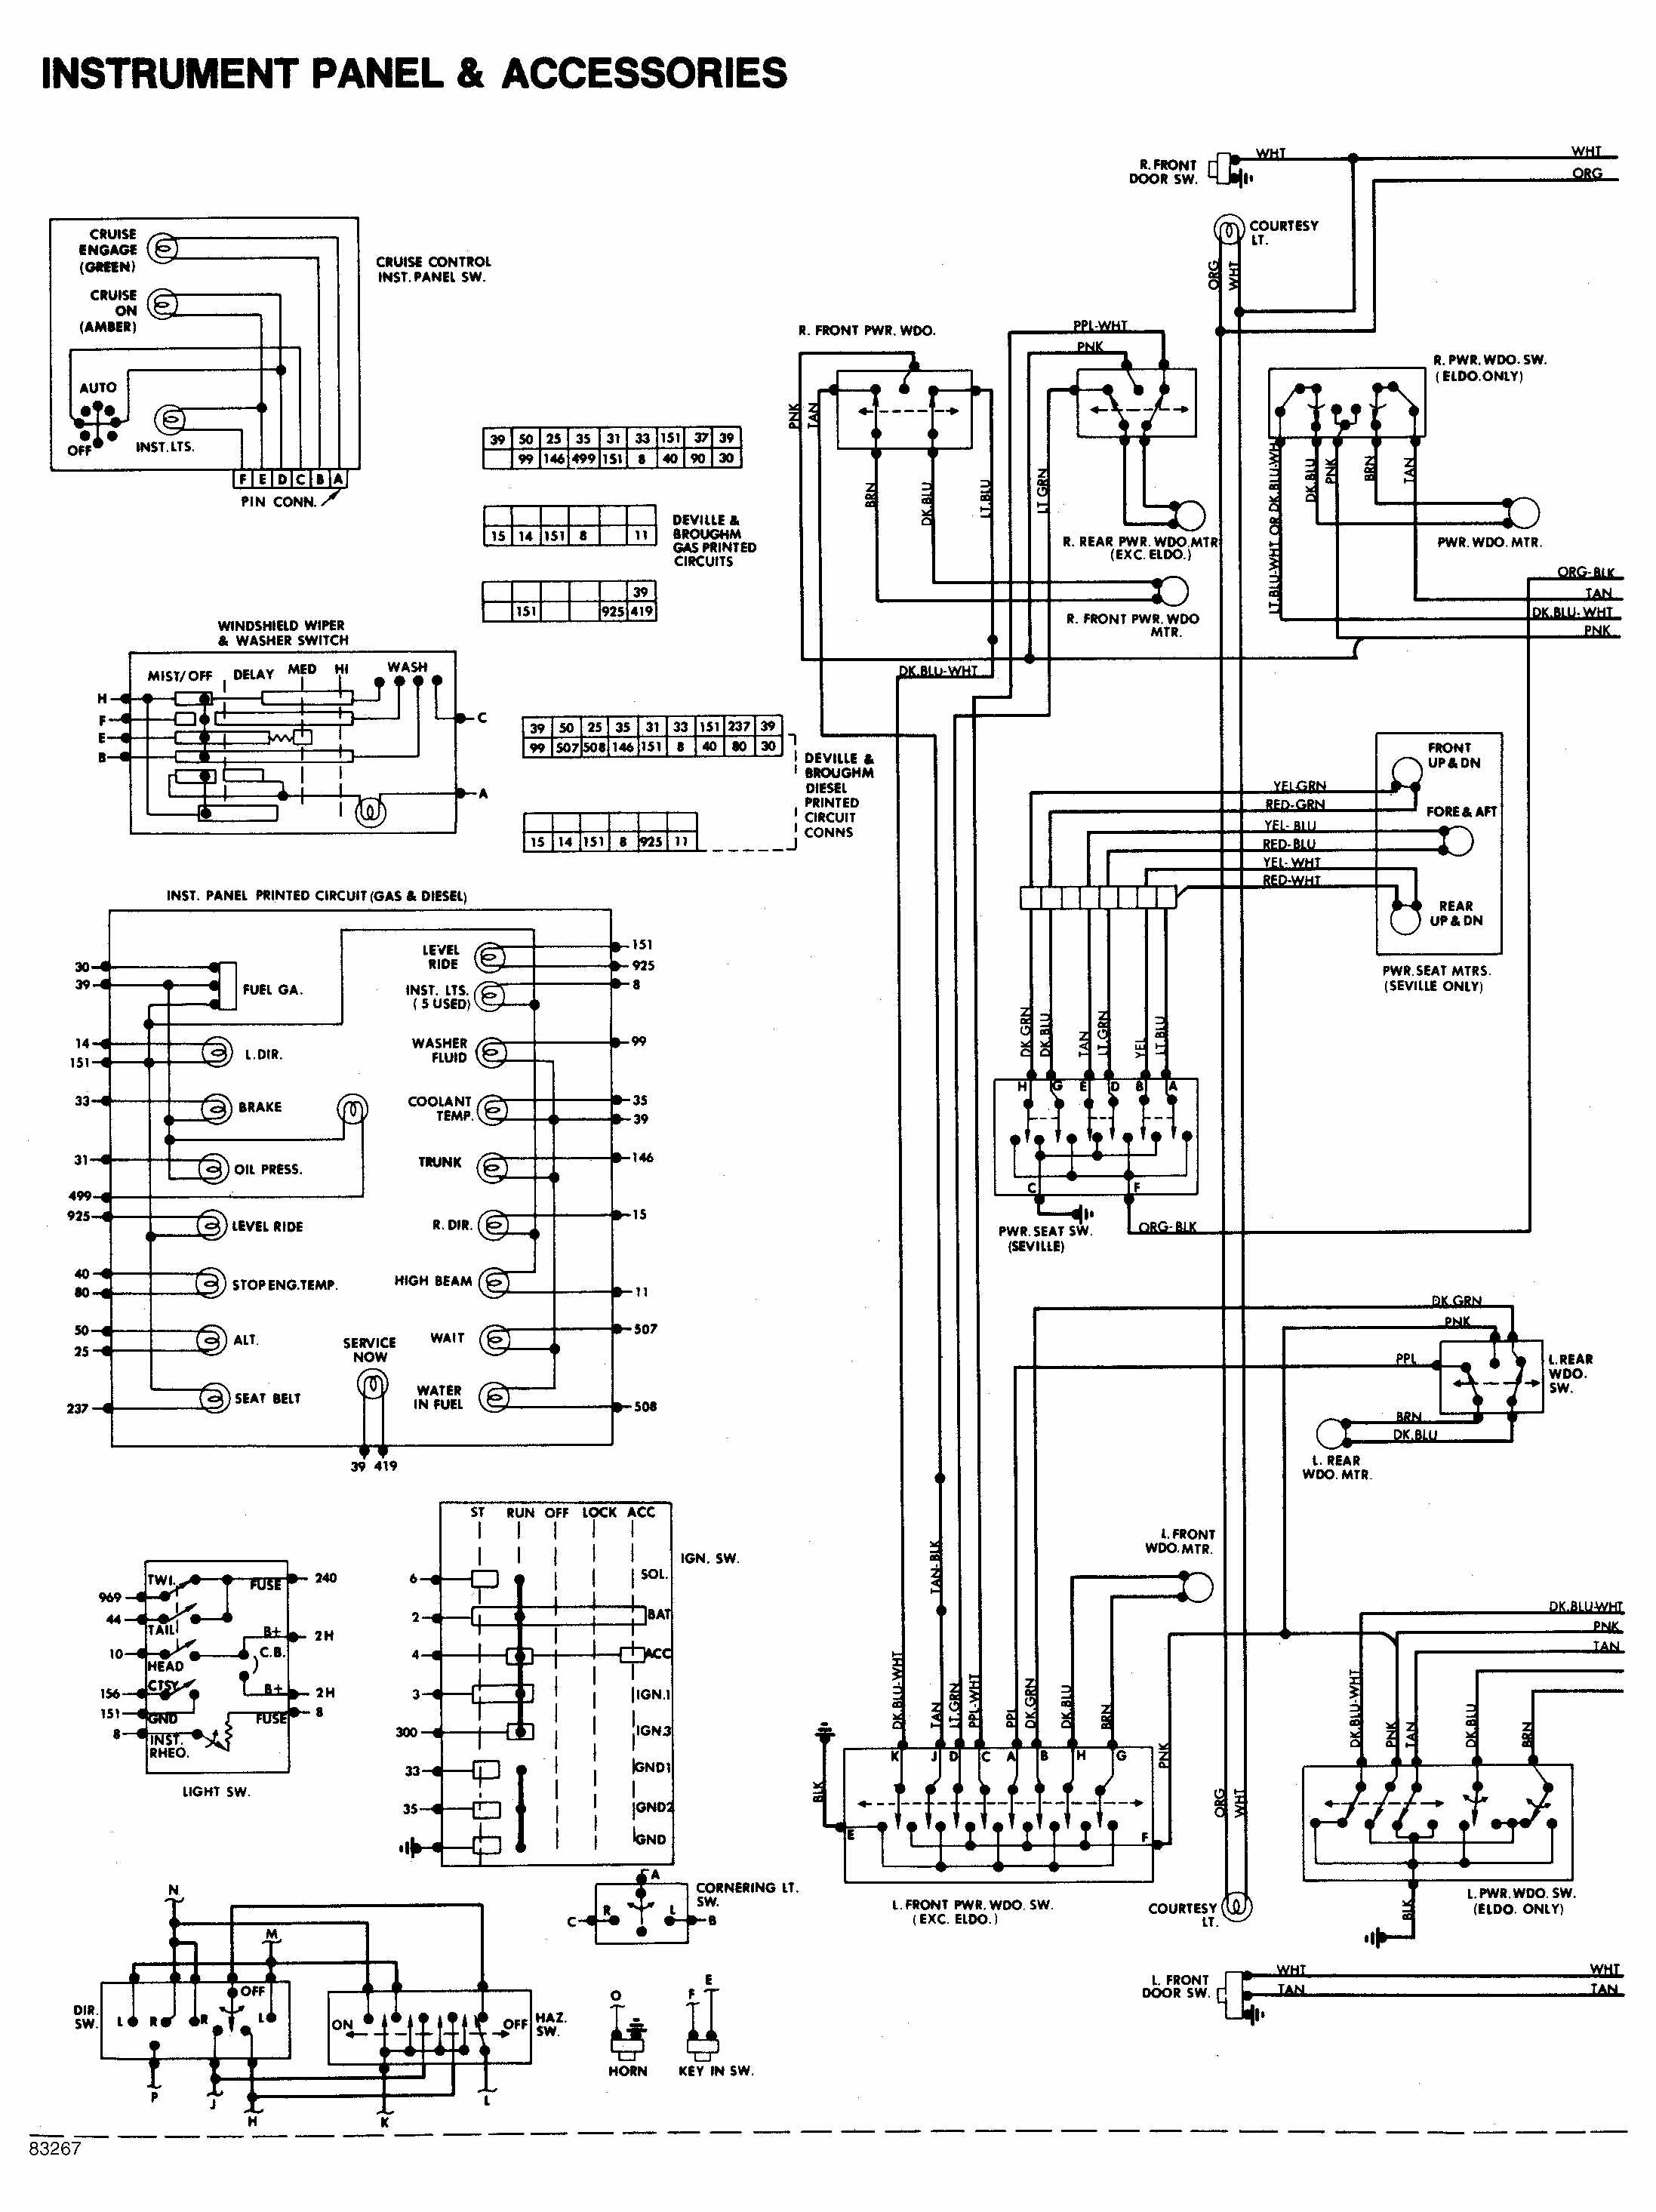 65 lincoln continental diagram wiring schematic wiring diagram 92 Lincoln Air Suspension Diagrams wiring diagram as well 1978 lincoln continental vacuum hose diagram1968 lincoln continental wiring diagram wiring diagram